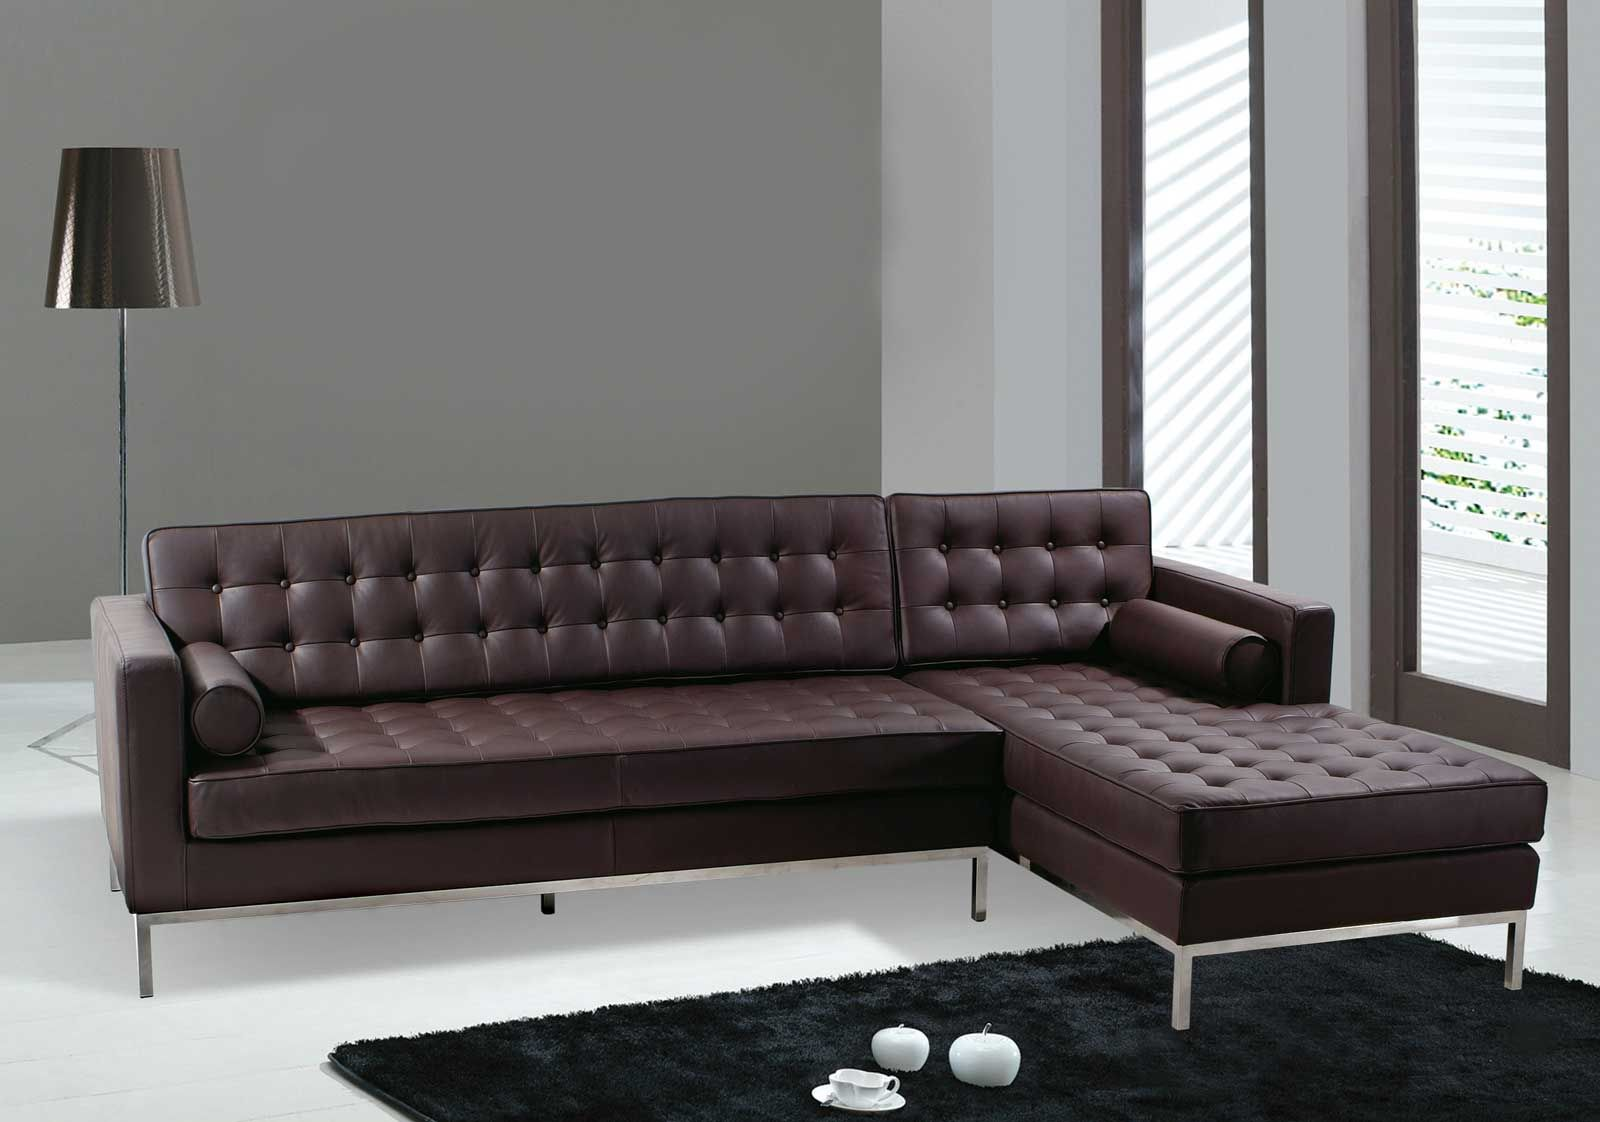 Italian Leather Living Room Furniture Modern Dark Brown Sectional L Shaped Sofa Design Ideas For Living